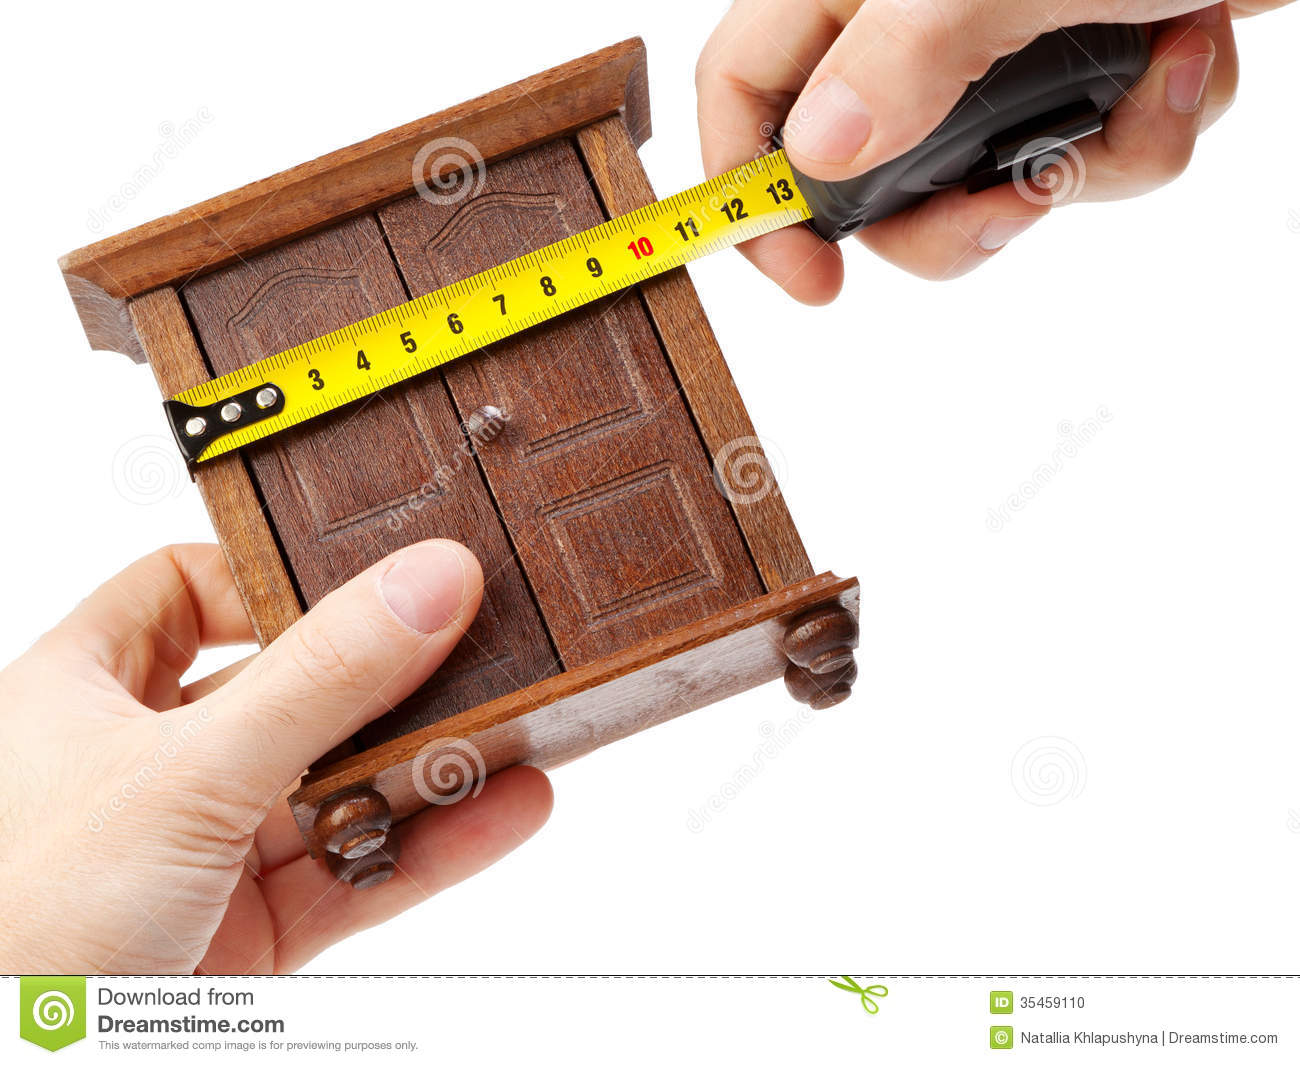 Stock Photo Woodworker Measuring Wardrobe Tape Measure Carpentry Con Concept Image35459110 further Homopolar Motor Revisited likewise Top 10 Ipad Creative Stands Design as well View All likewise Workshop Tools Machines 24572624. on woodworking workshop design